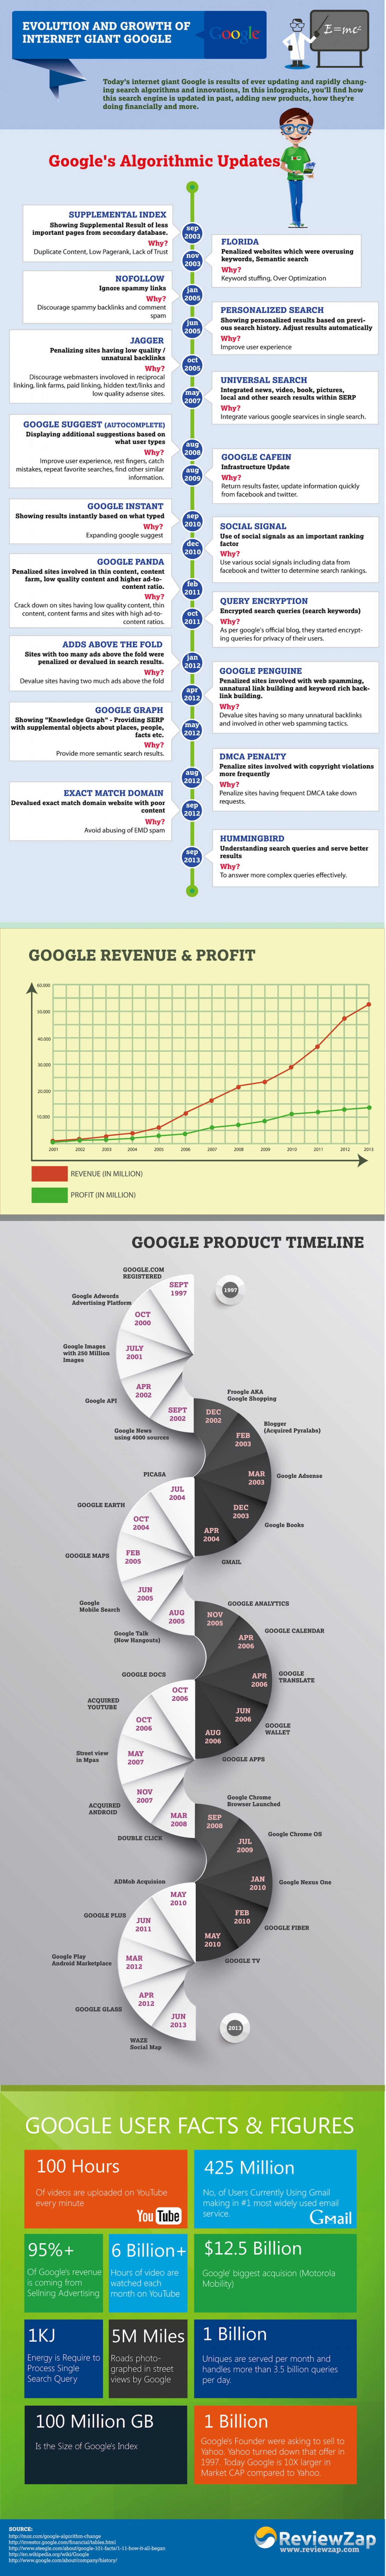 Evolution and Growth of Internet Giant Google Infographic